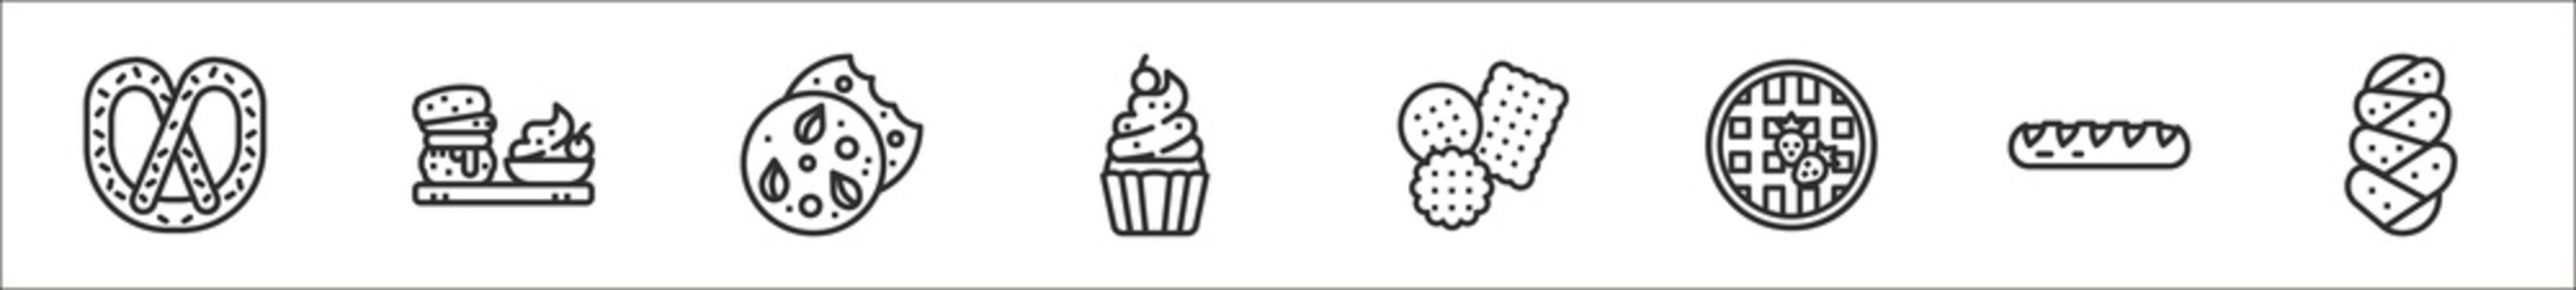 set of 8 august bakery thin outline icons such as pretzel, scone, cookie, cupcake, biscuit, waffles, baguette, challah